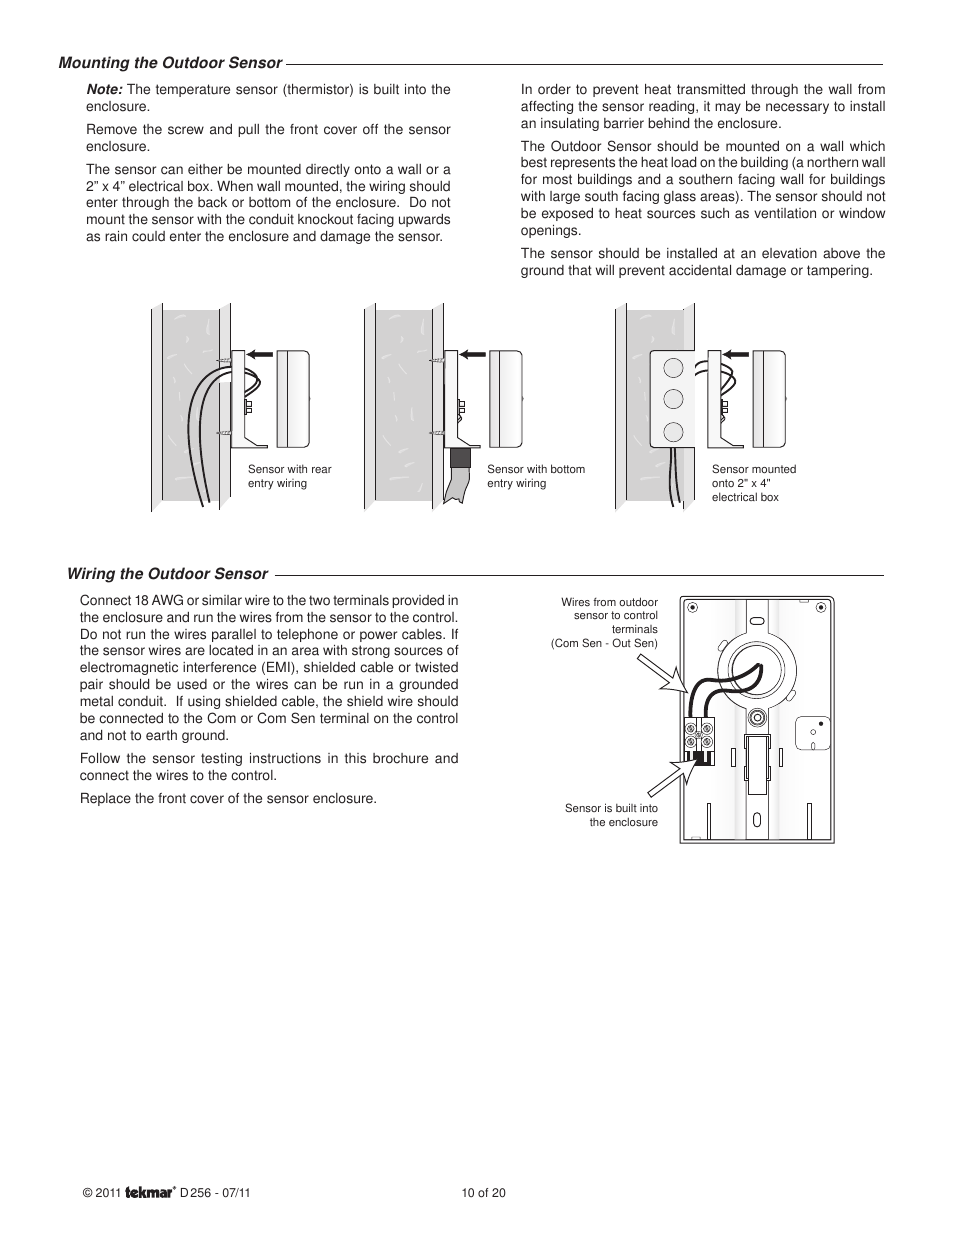 Tekmar 256 Wiring Diagram Libraries Outdoor Sensor Boiler Control User Manual Page 10 20 Original Mode